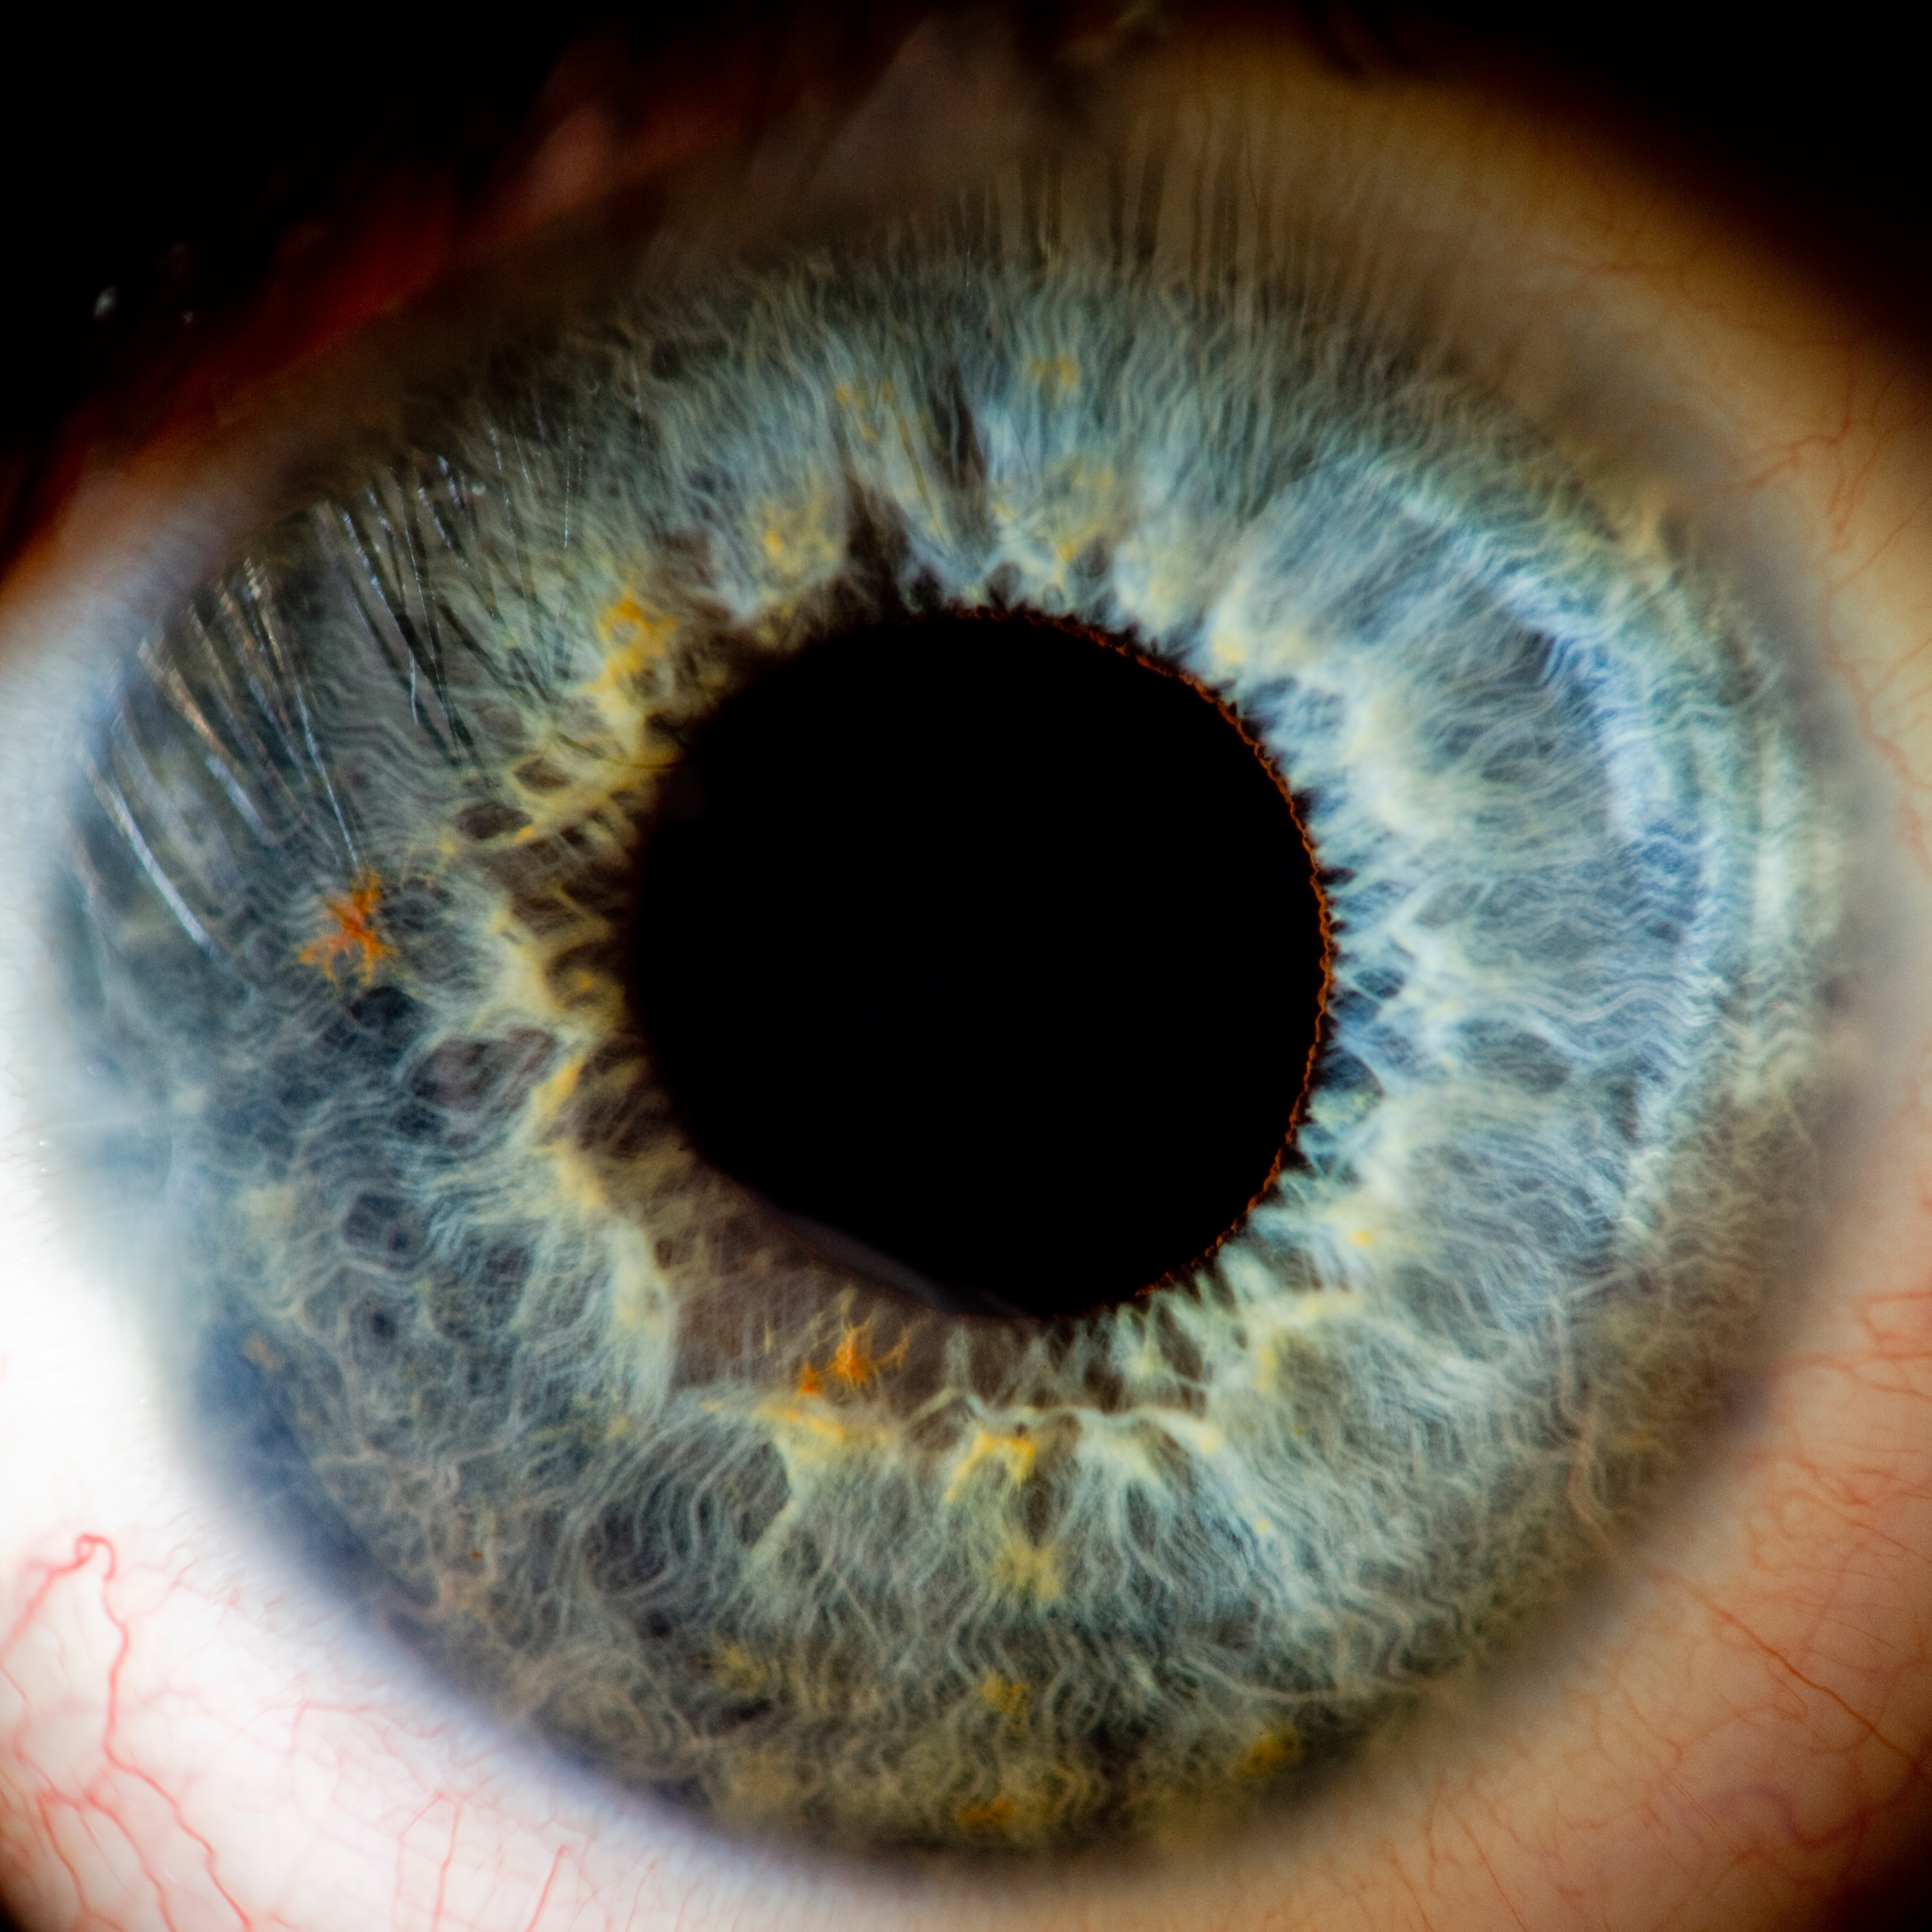 What Scientist First Determined That Human Sight